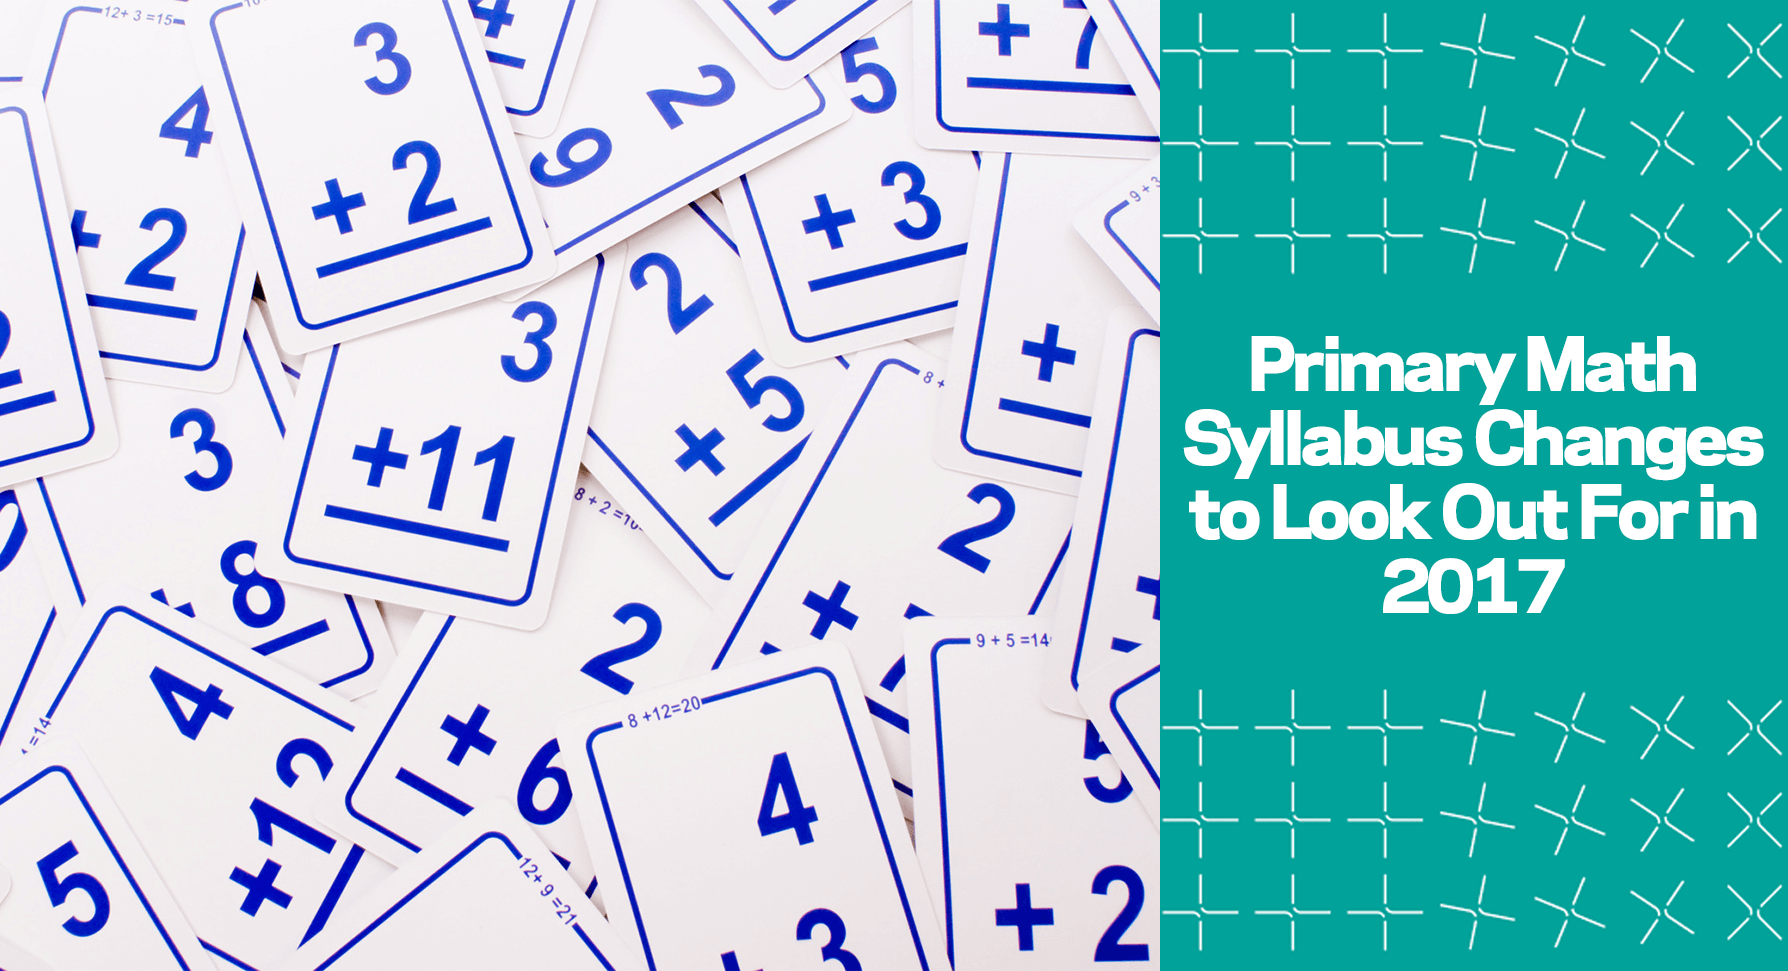 PSLE Primary Math Syllabus Changes to Look Out For in 2017